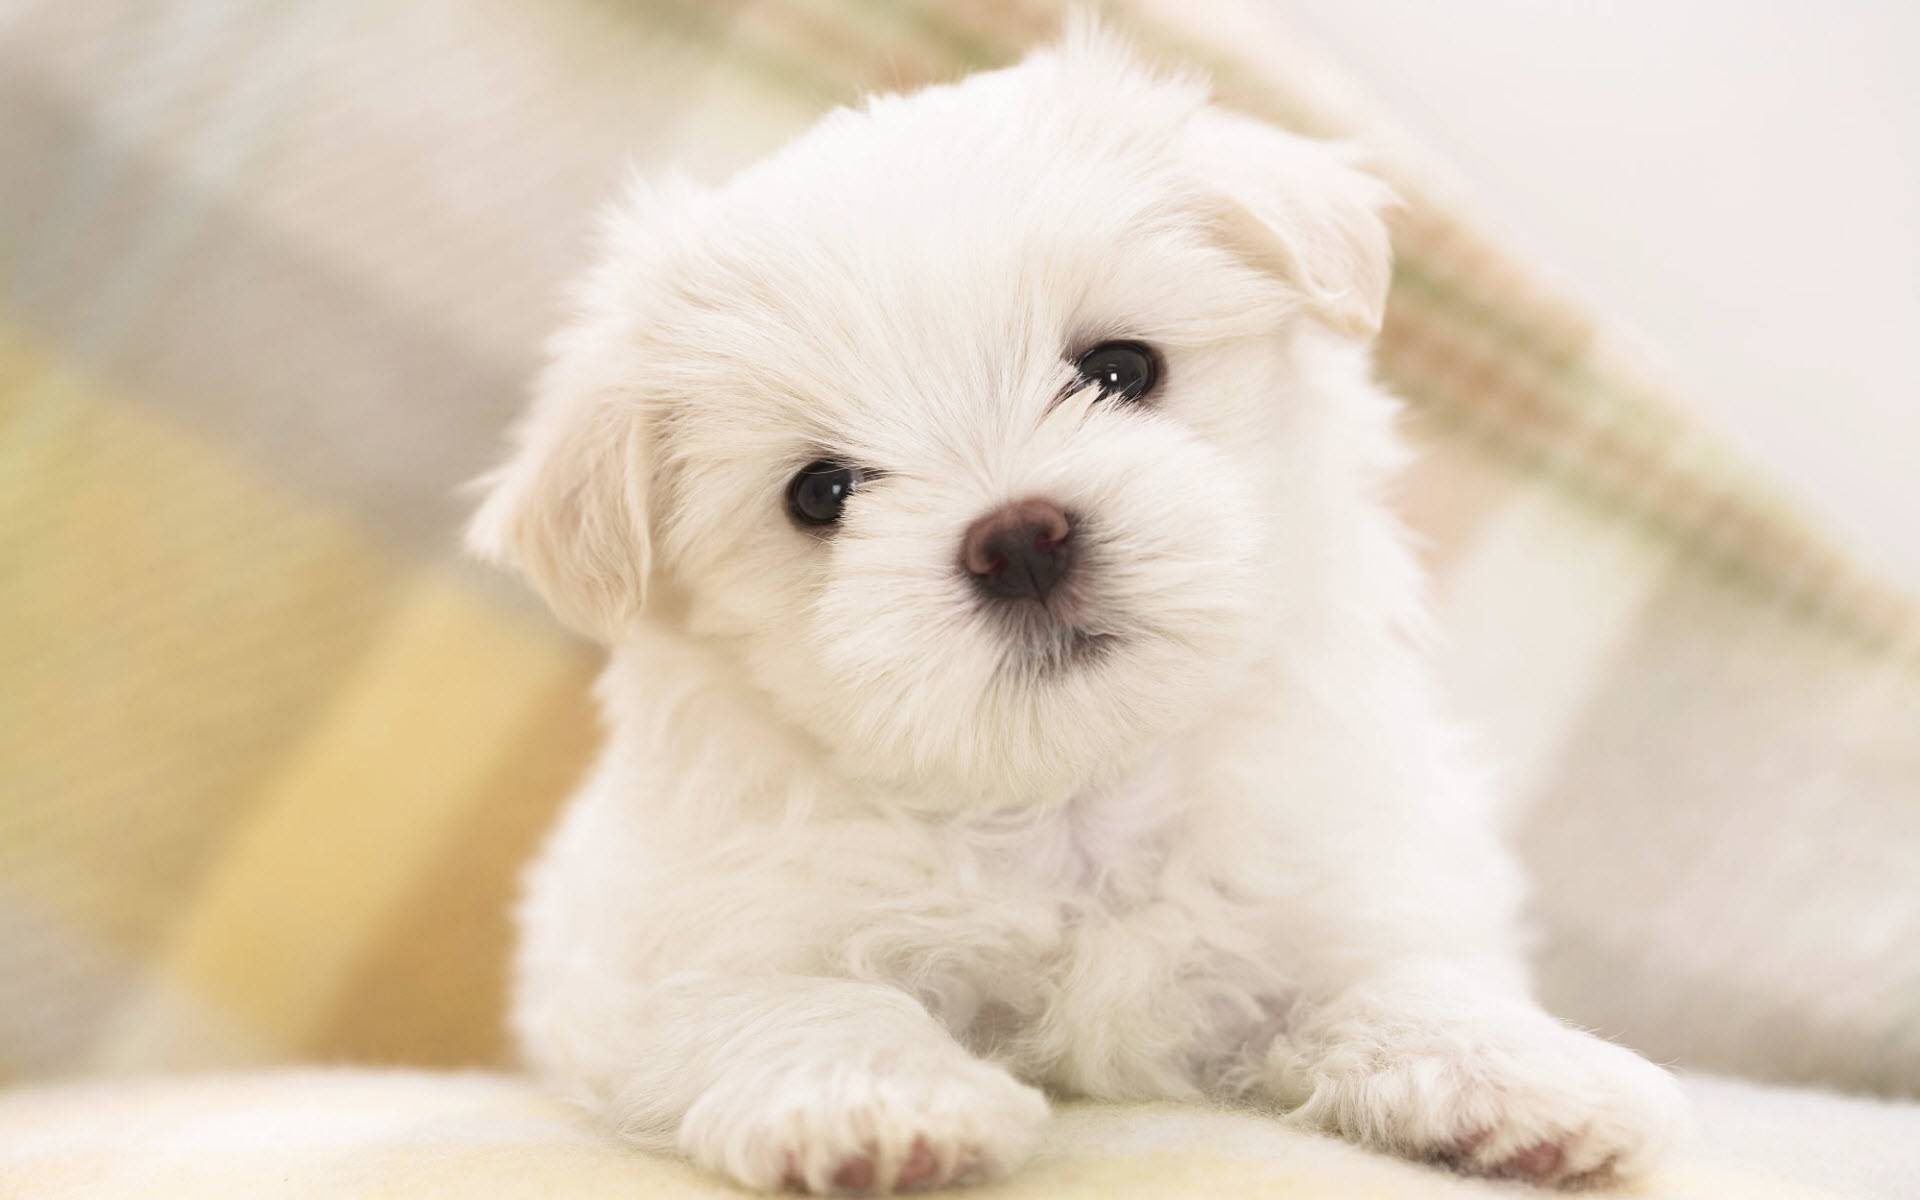 cute white puppy   Dogs Wallpaper 1920x1200